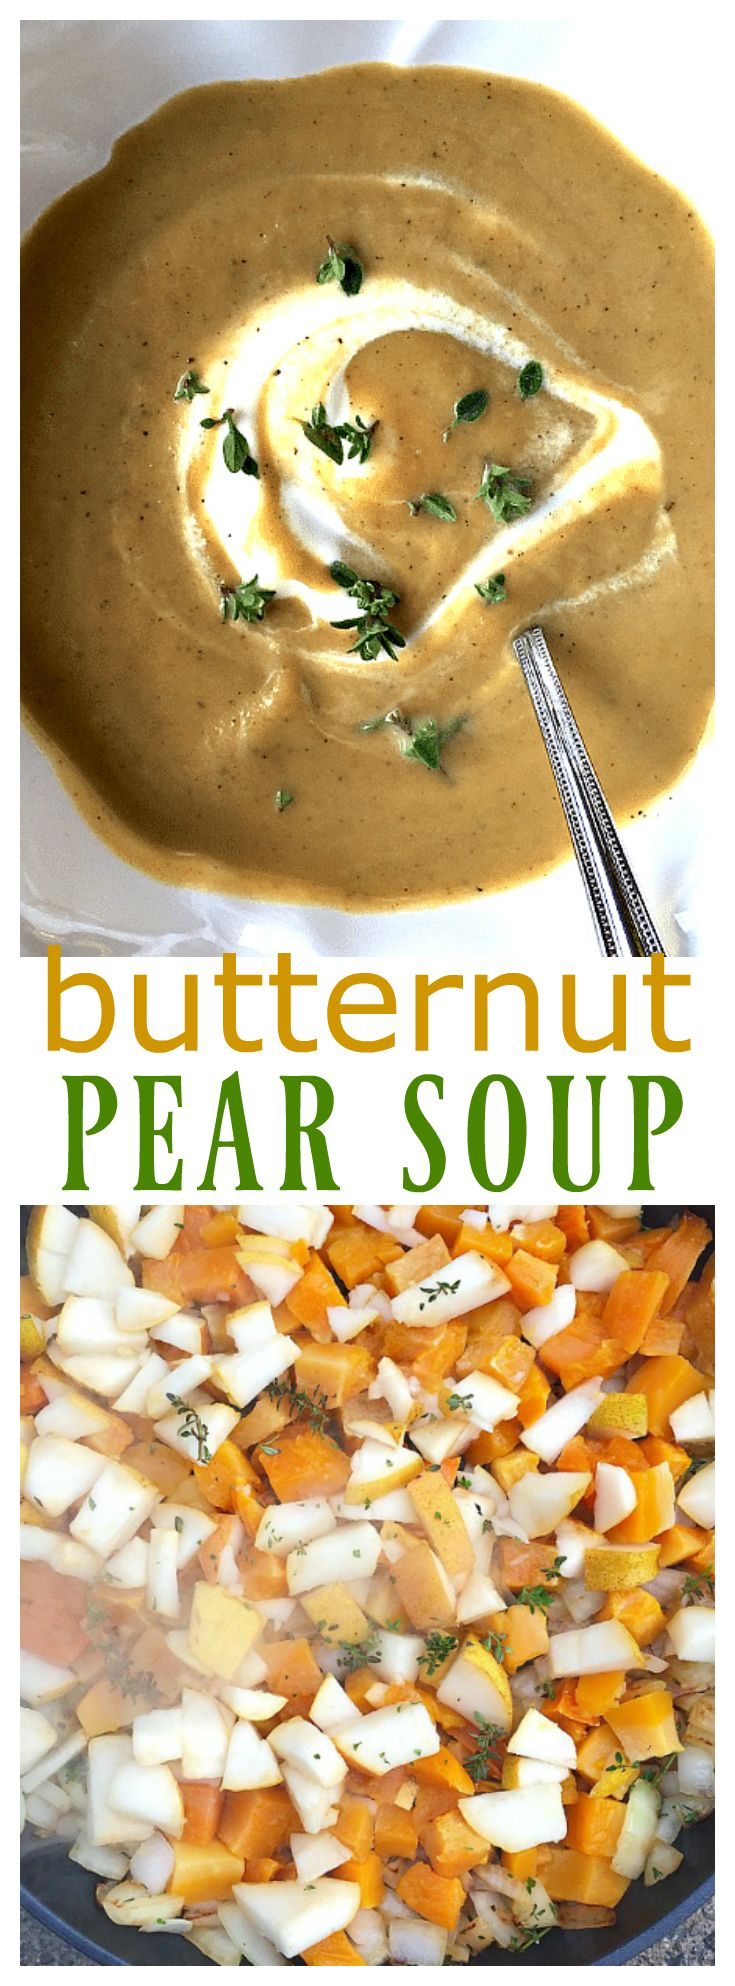 This Butternut Pear Soup recipe is made with pears and butternut squash. The…